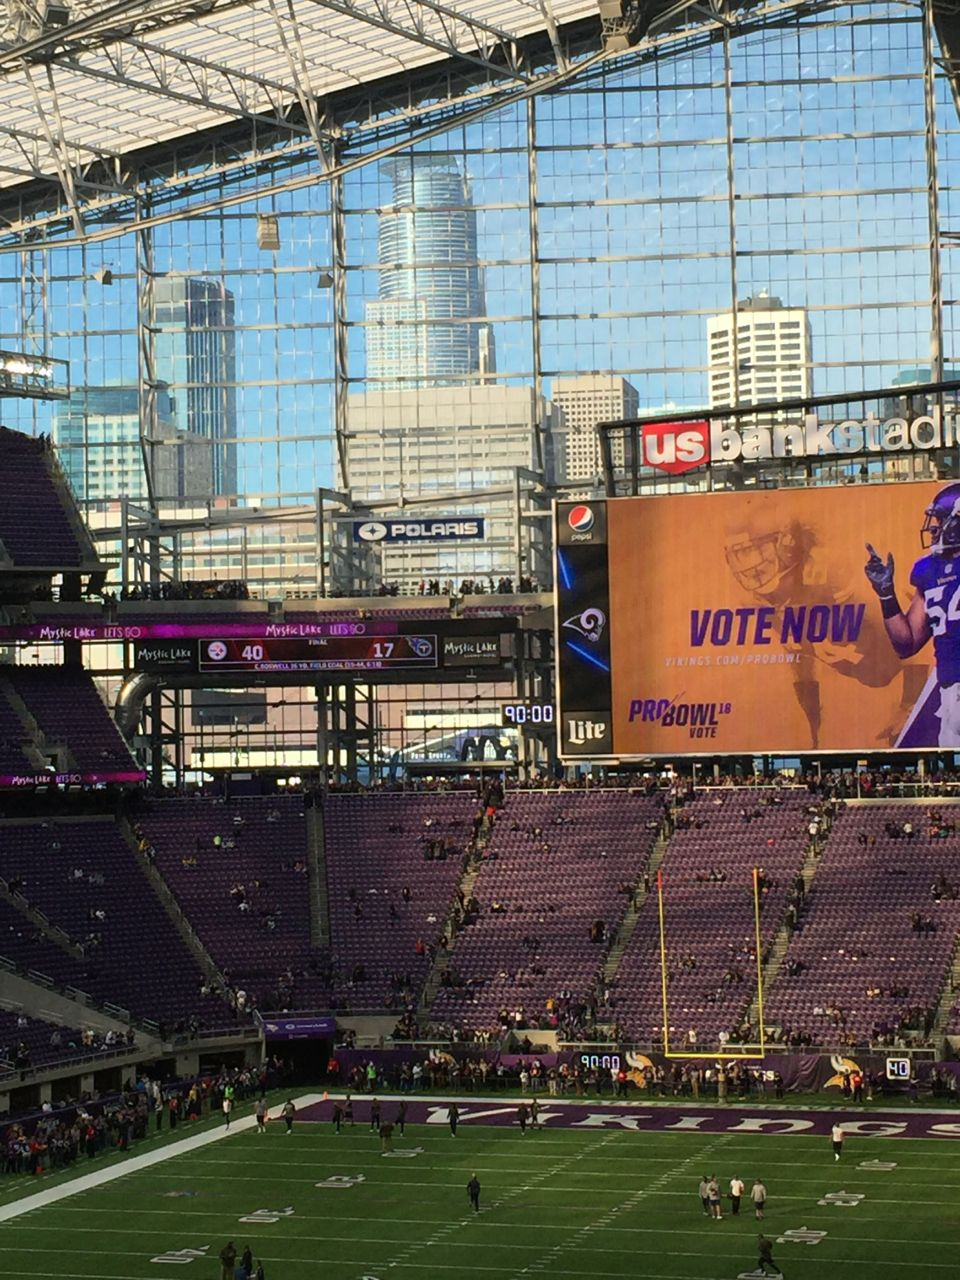 Exterior: 'Super' Wi-Fi And DAS At U.S. Bank Stadium Ready For Super